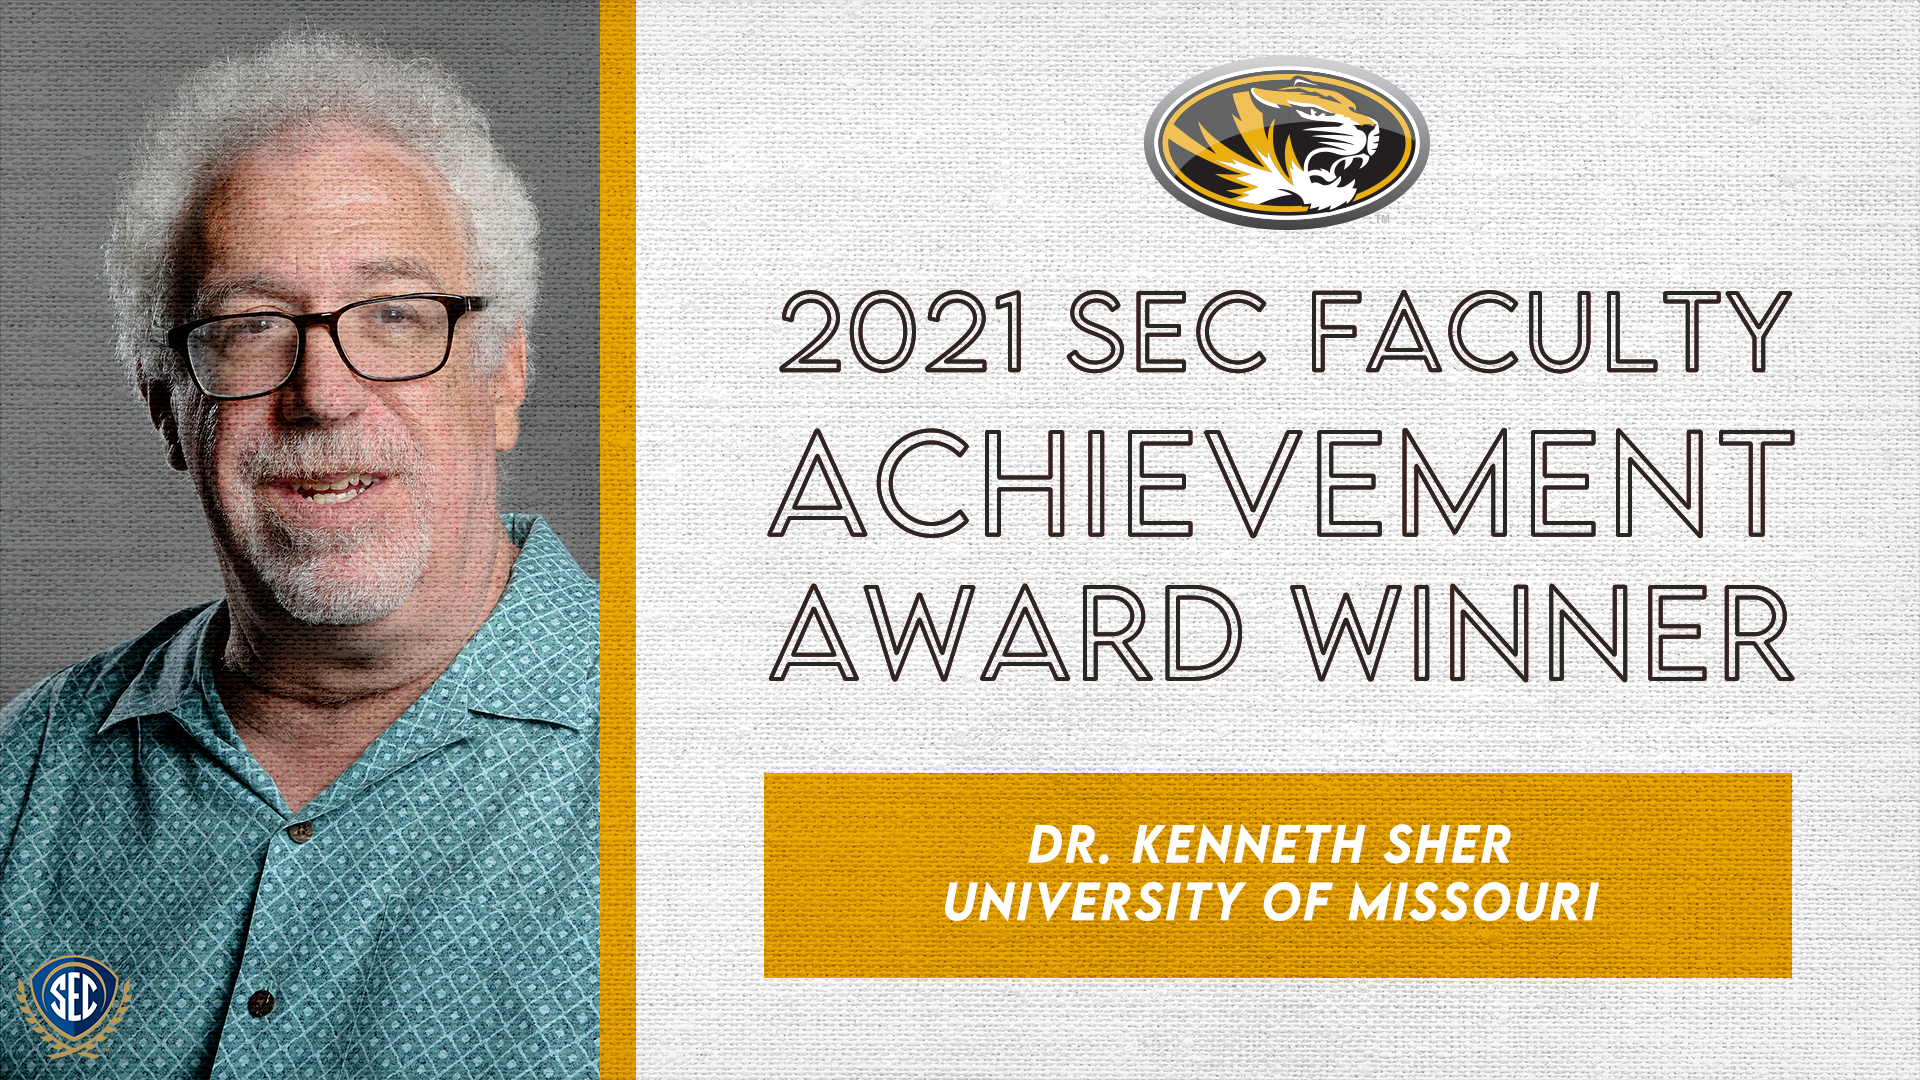 SEC Announces Dr. Kenneth Sher Wins 2021 Faculty Achievement Award for University of Missouri